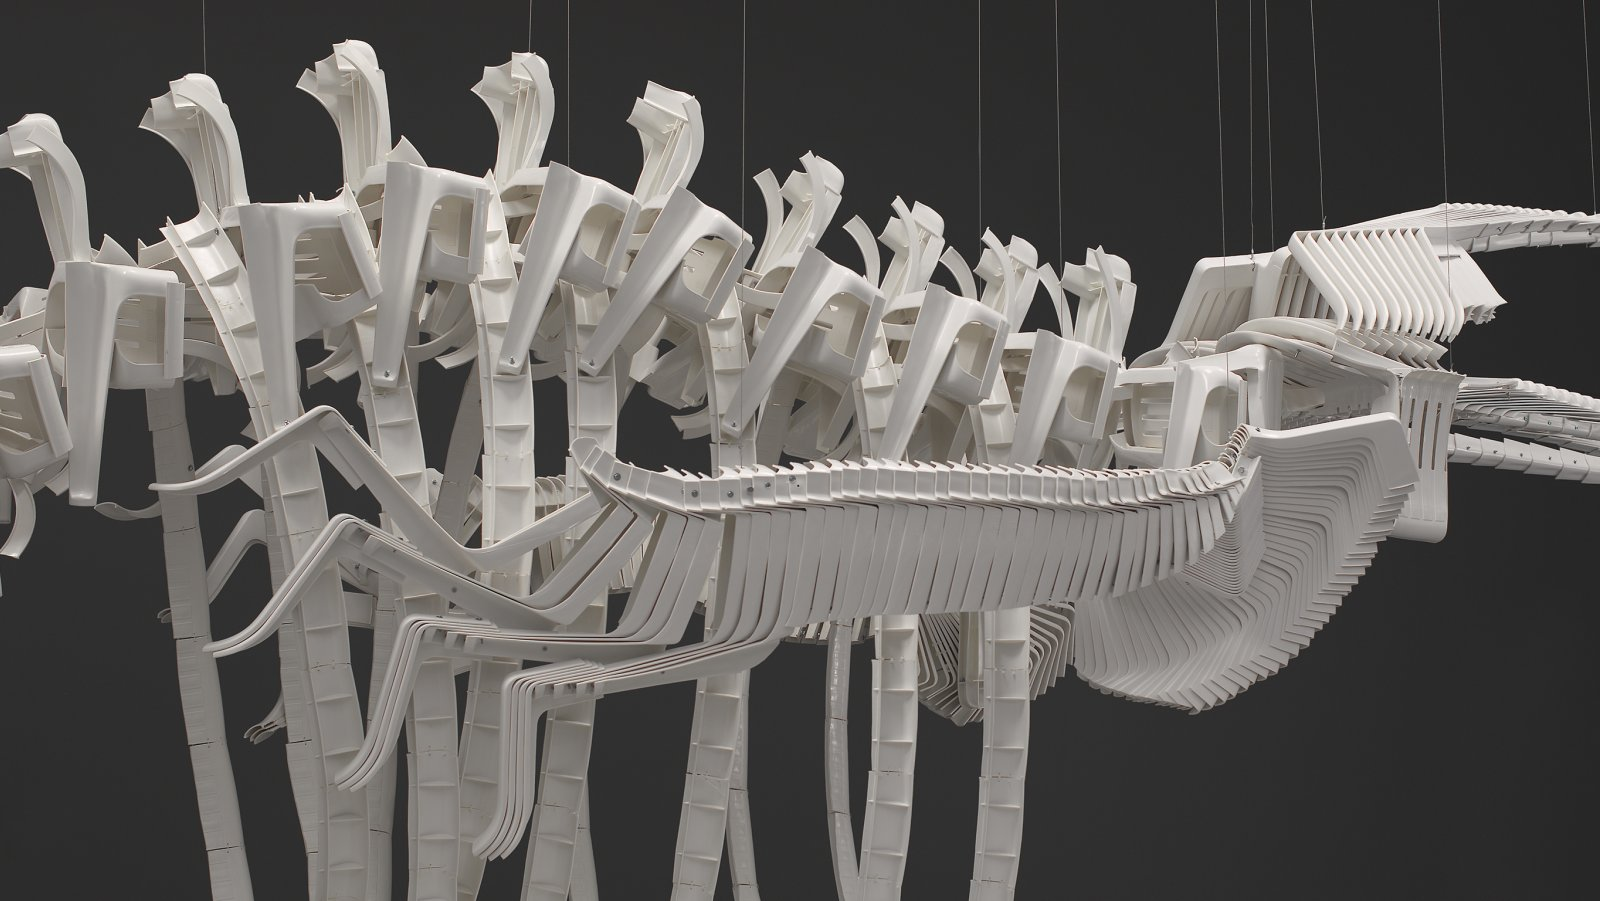 Brian Jungen,Cetology (detail), 2002, plastic chairs, 159 x 166 x 587 in. (404 x 422 x 1491 cm)